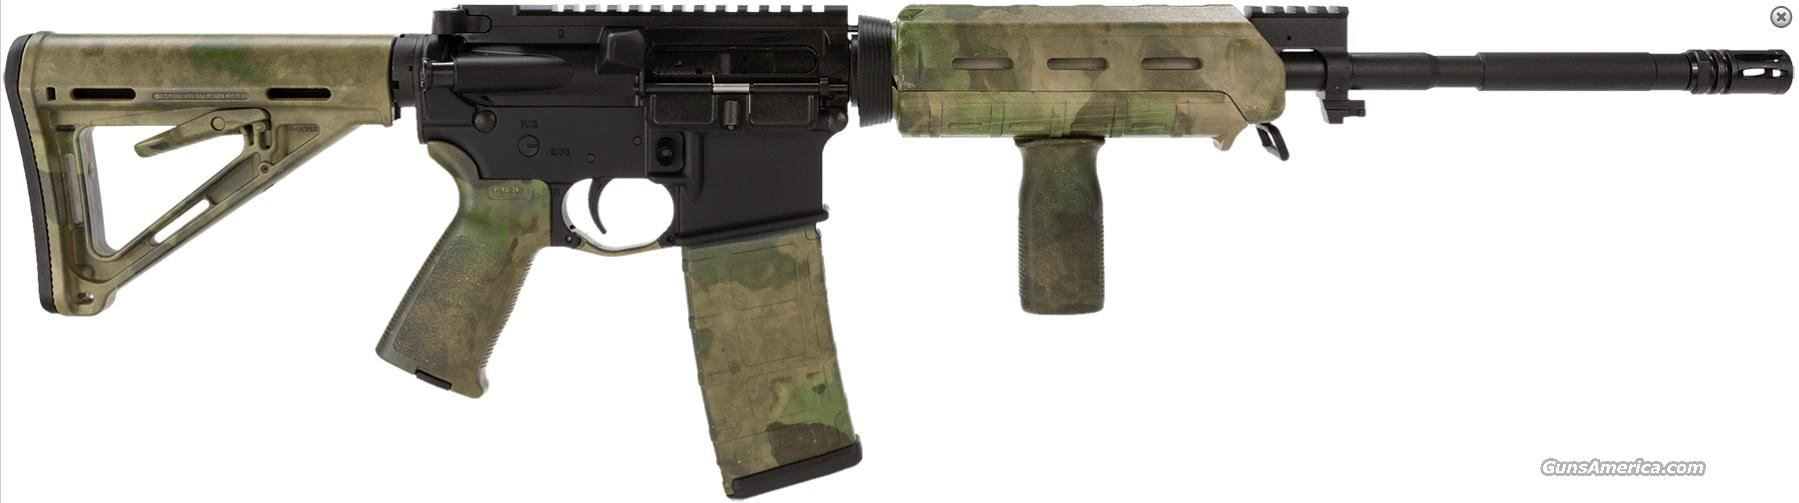 R16M4FTT-AT Windham Weaponry SRC ATACS AU Camo Exclusive - 223 Rem/5.56 NATO  Guns > Rifles > Windham Weaponry Rifles